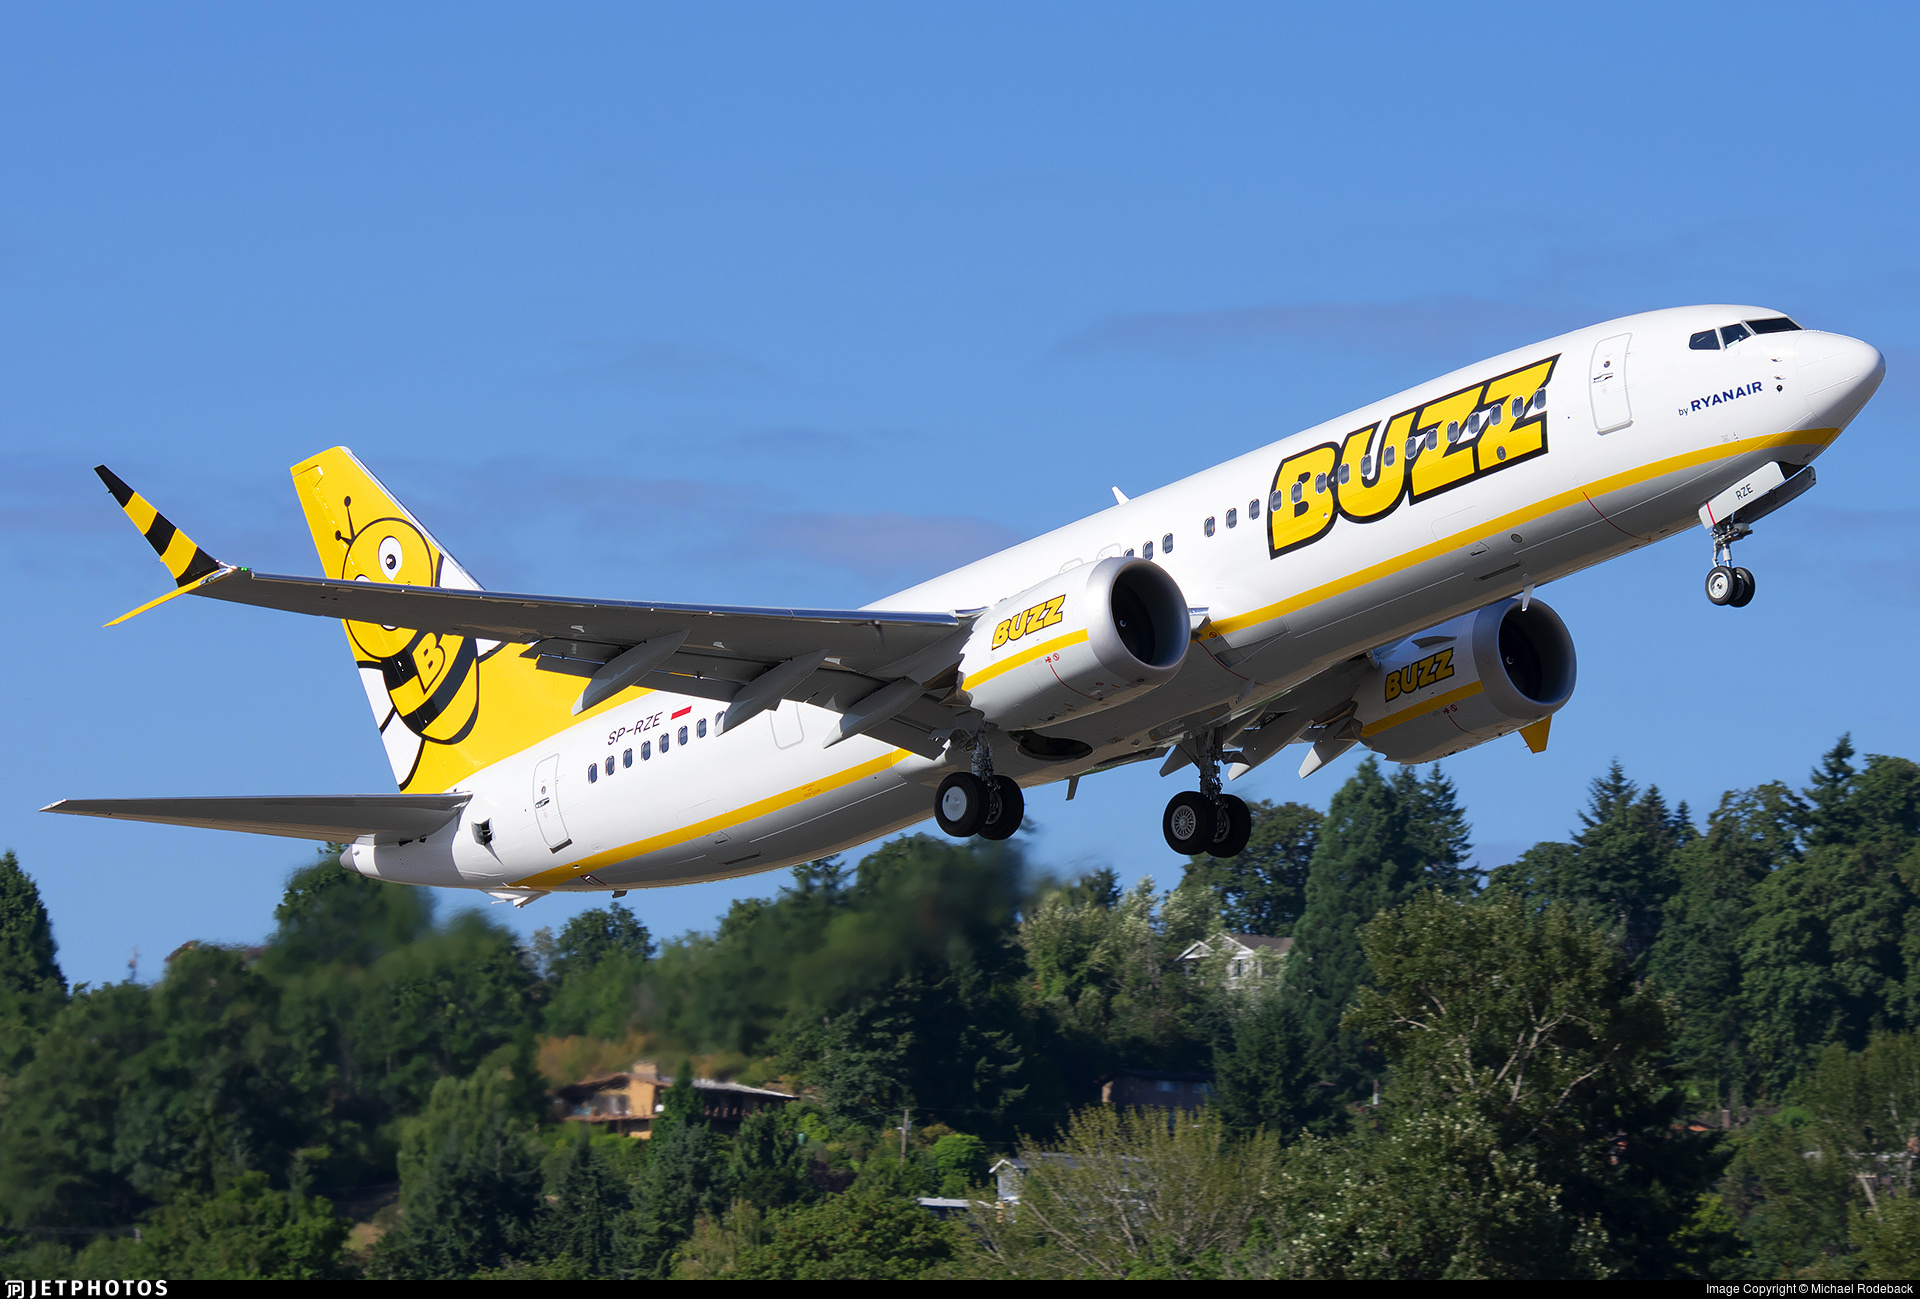 First BUZZ livery 737-8-200 MAX